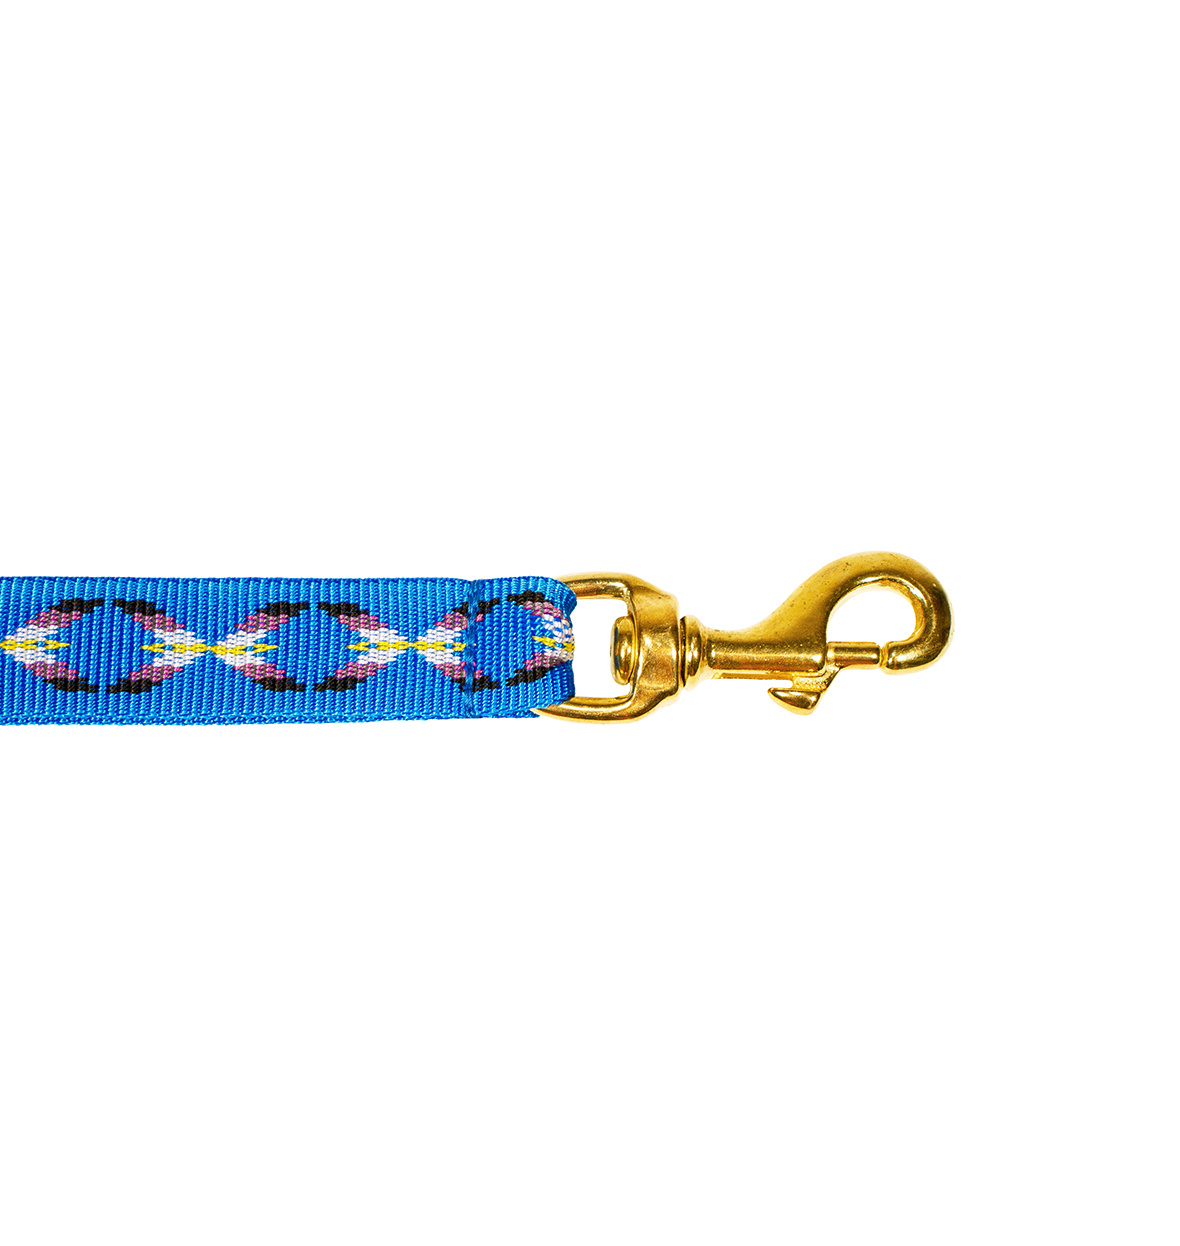 Northern Howl Hands free Dog Leash with integrated Bungee - blue